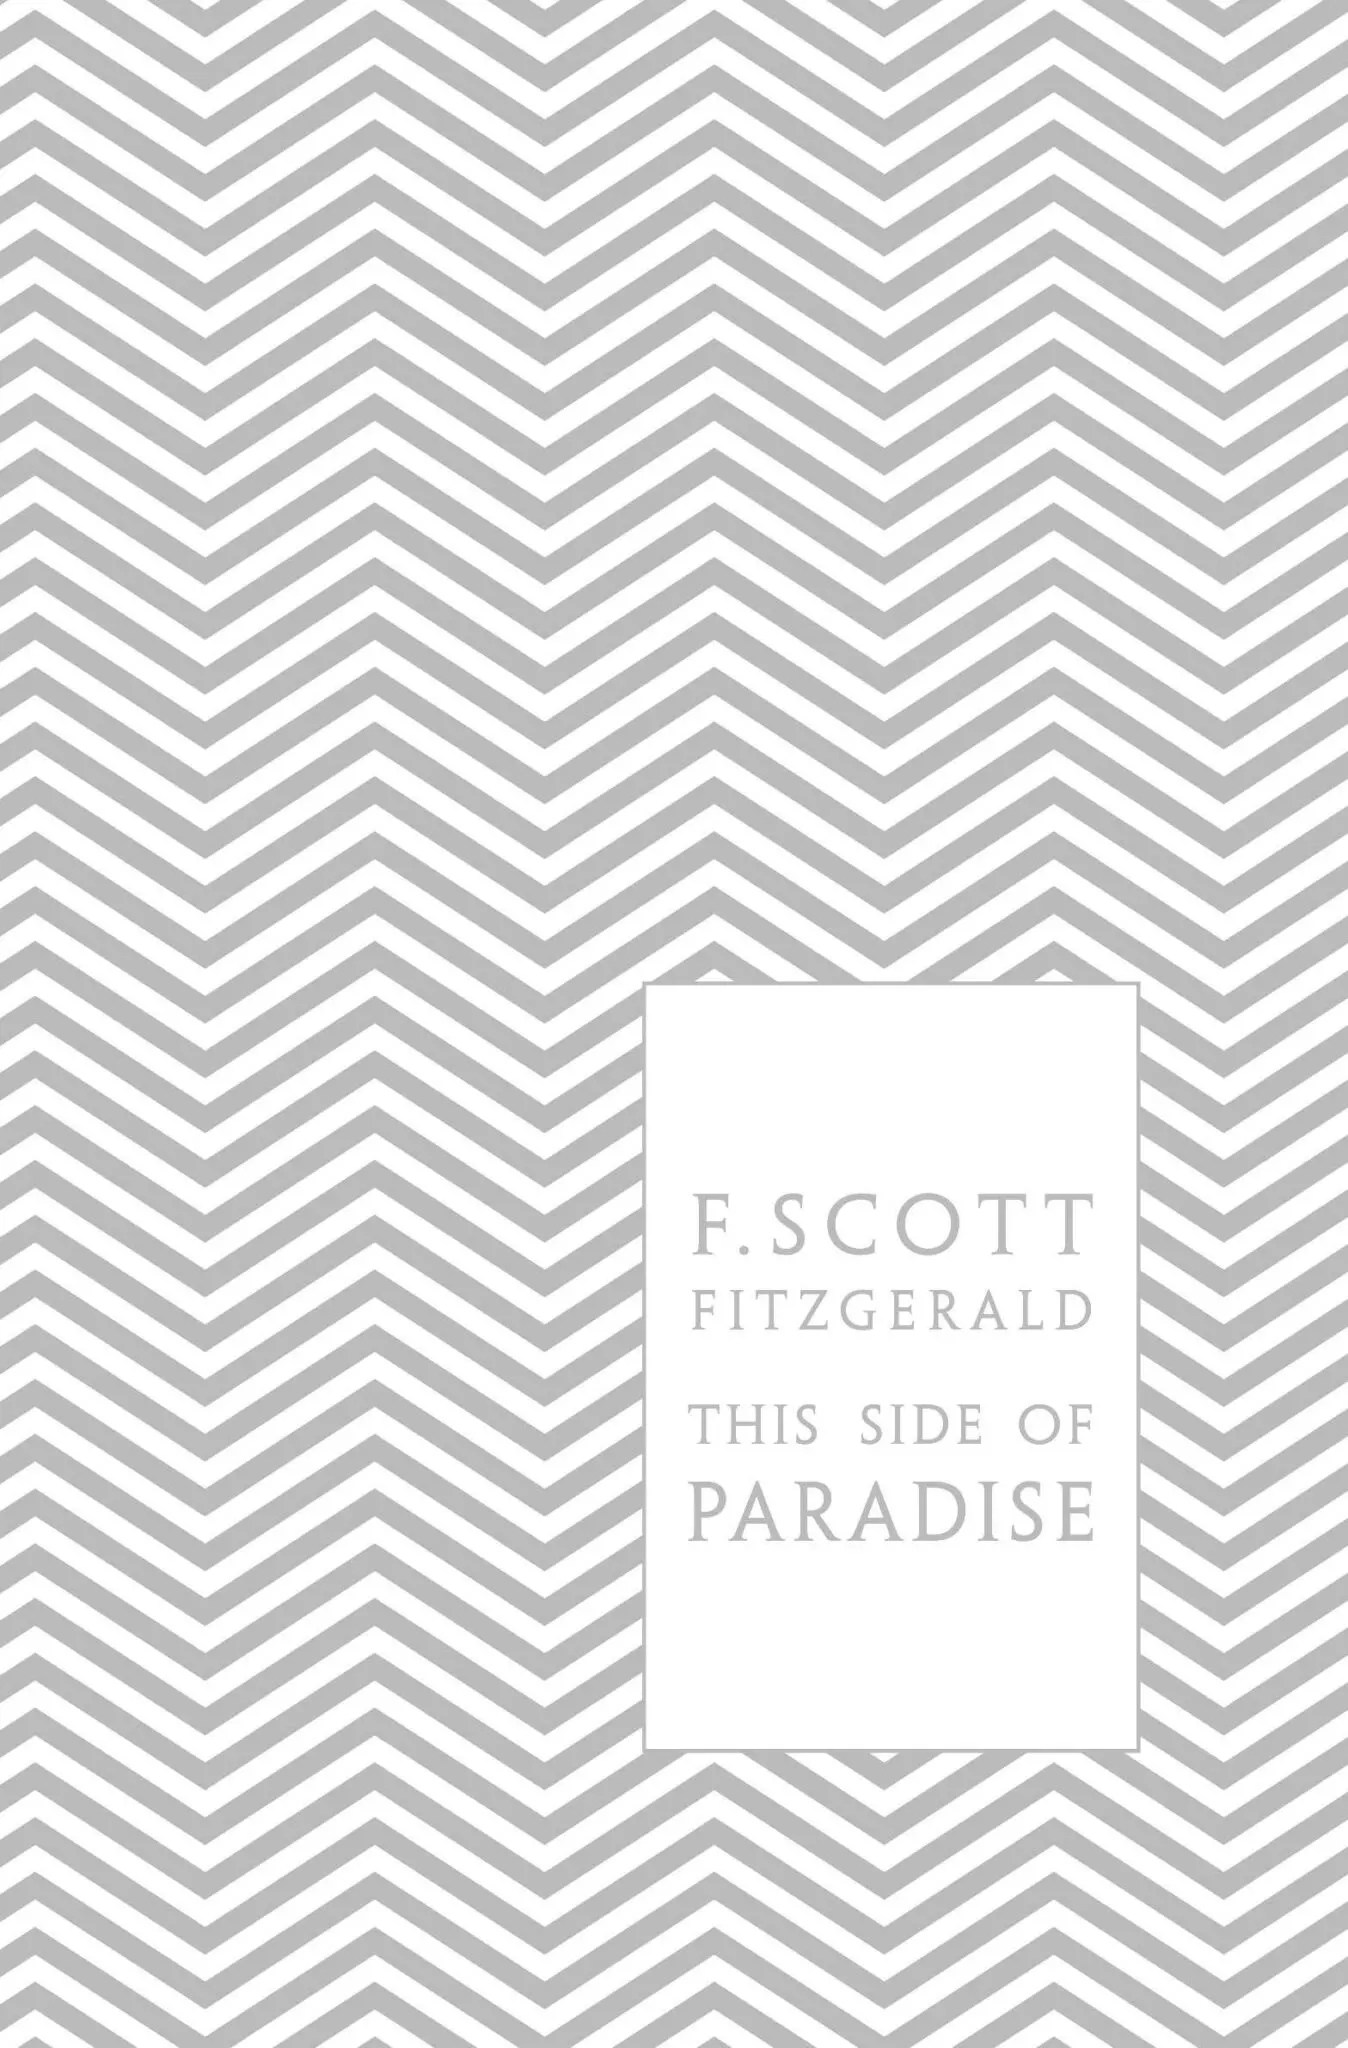 F Scott Fizgerald Foiled This Side of Paradise